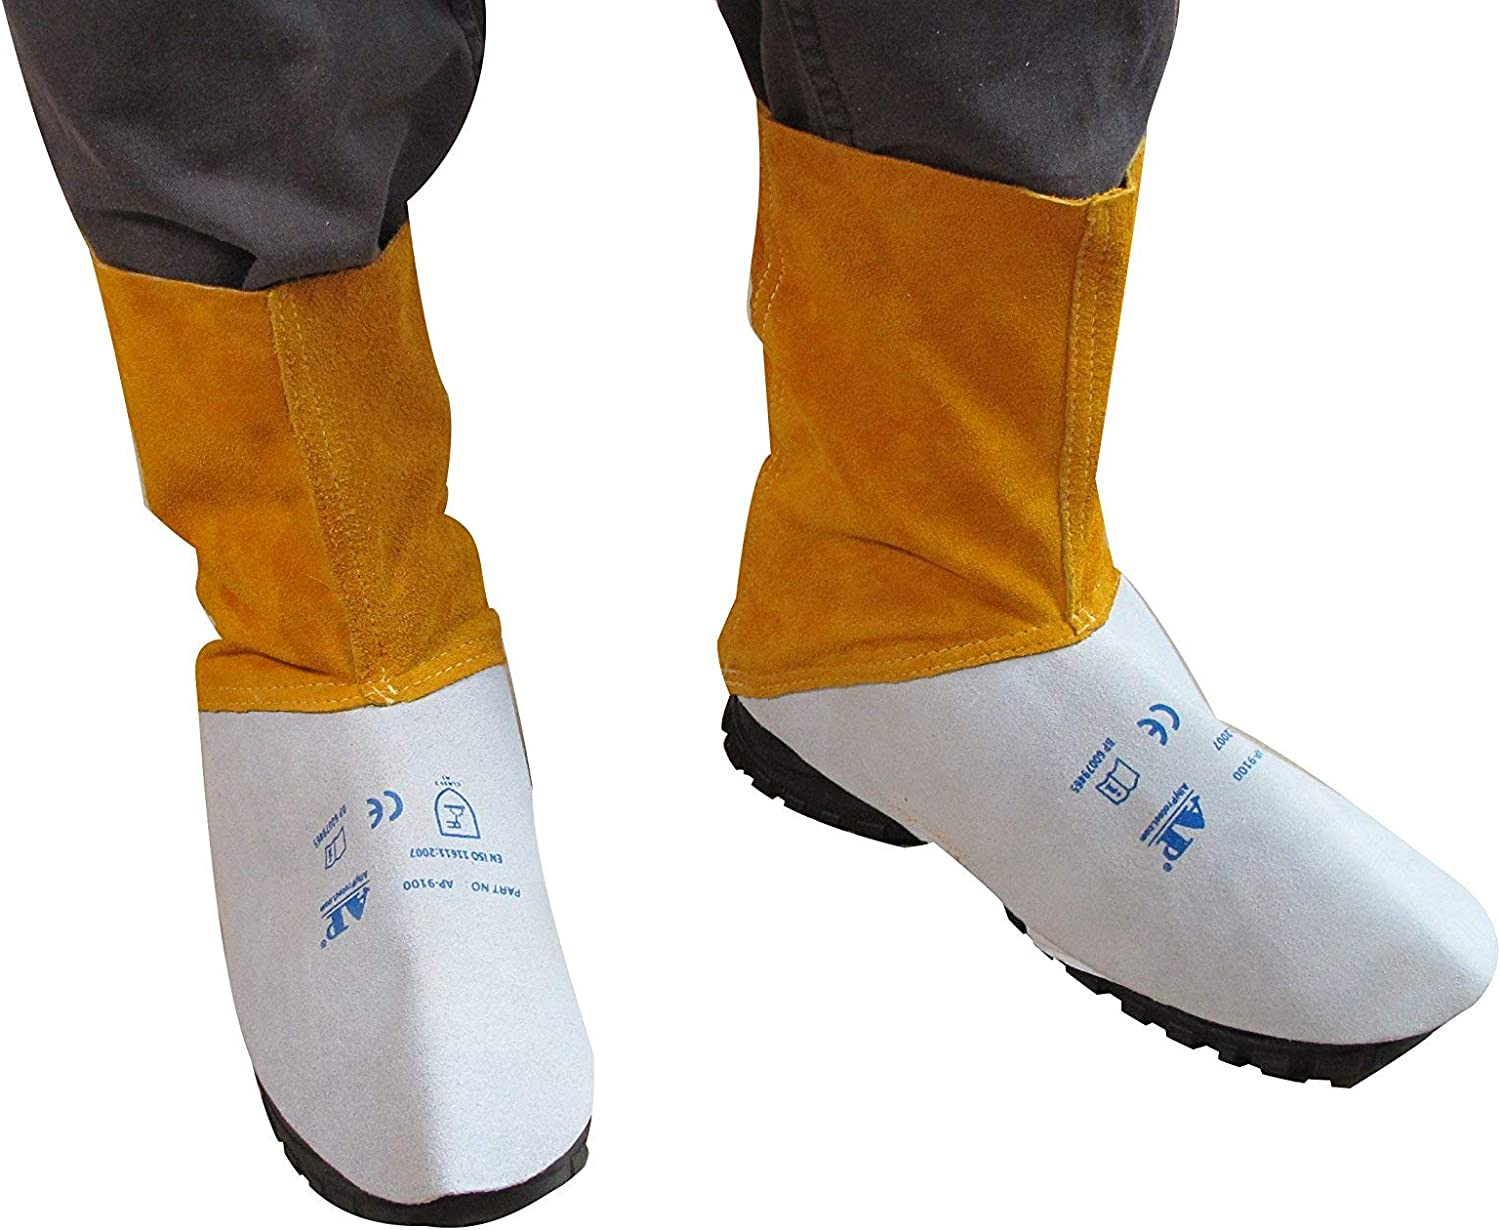 AP-9100 AllyProtect Flame Retardant Leather Welding Spats//Shoe Protector//Boots Cover for Gardening /&Work Length 6 inch